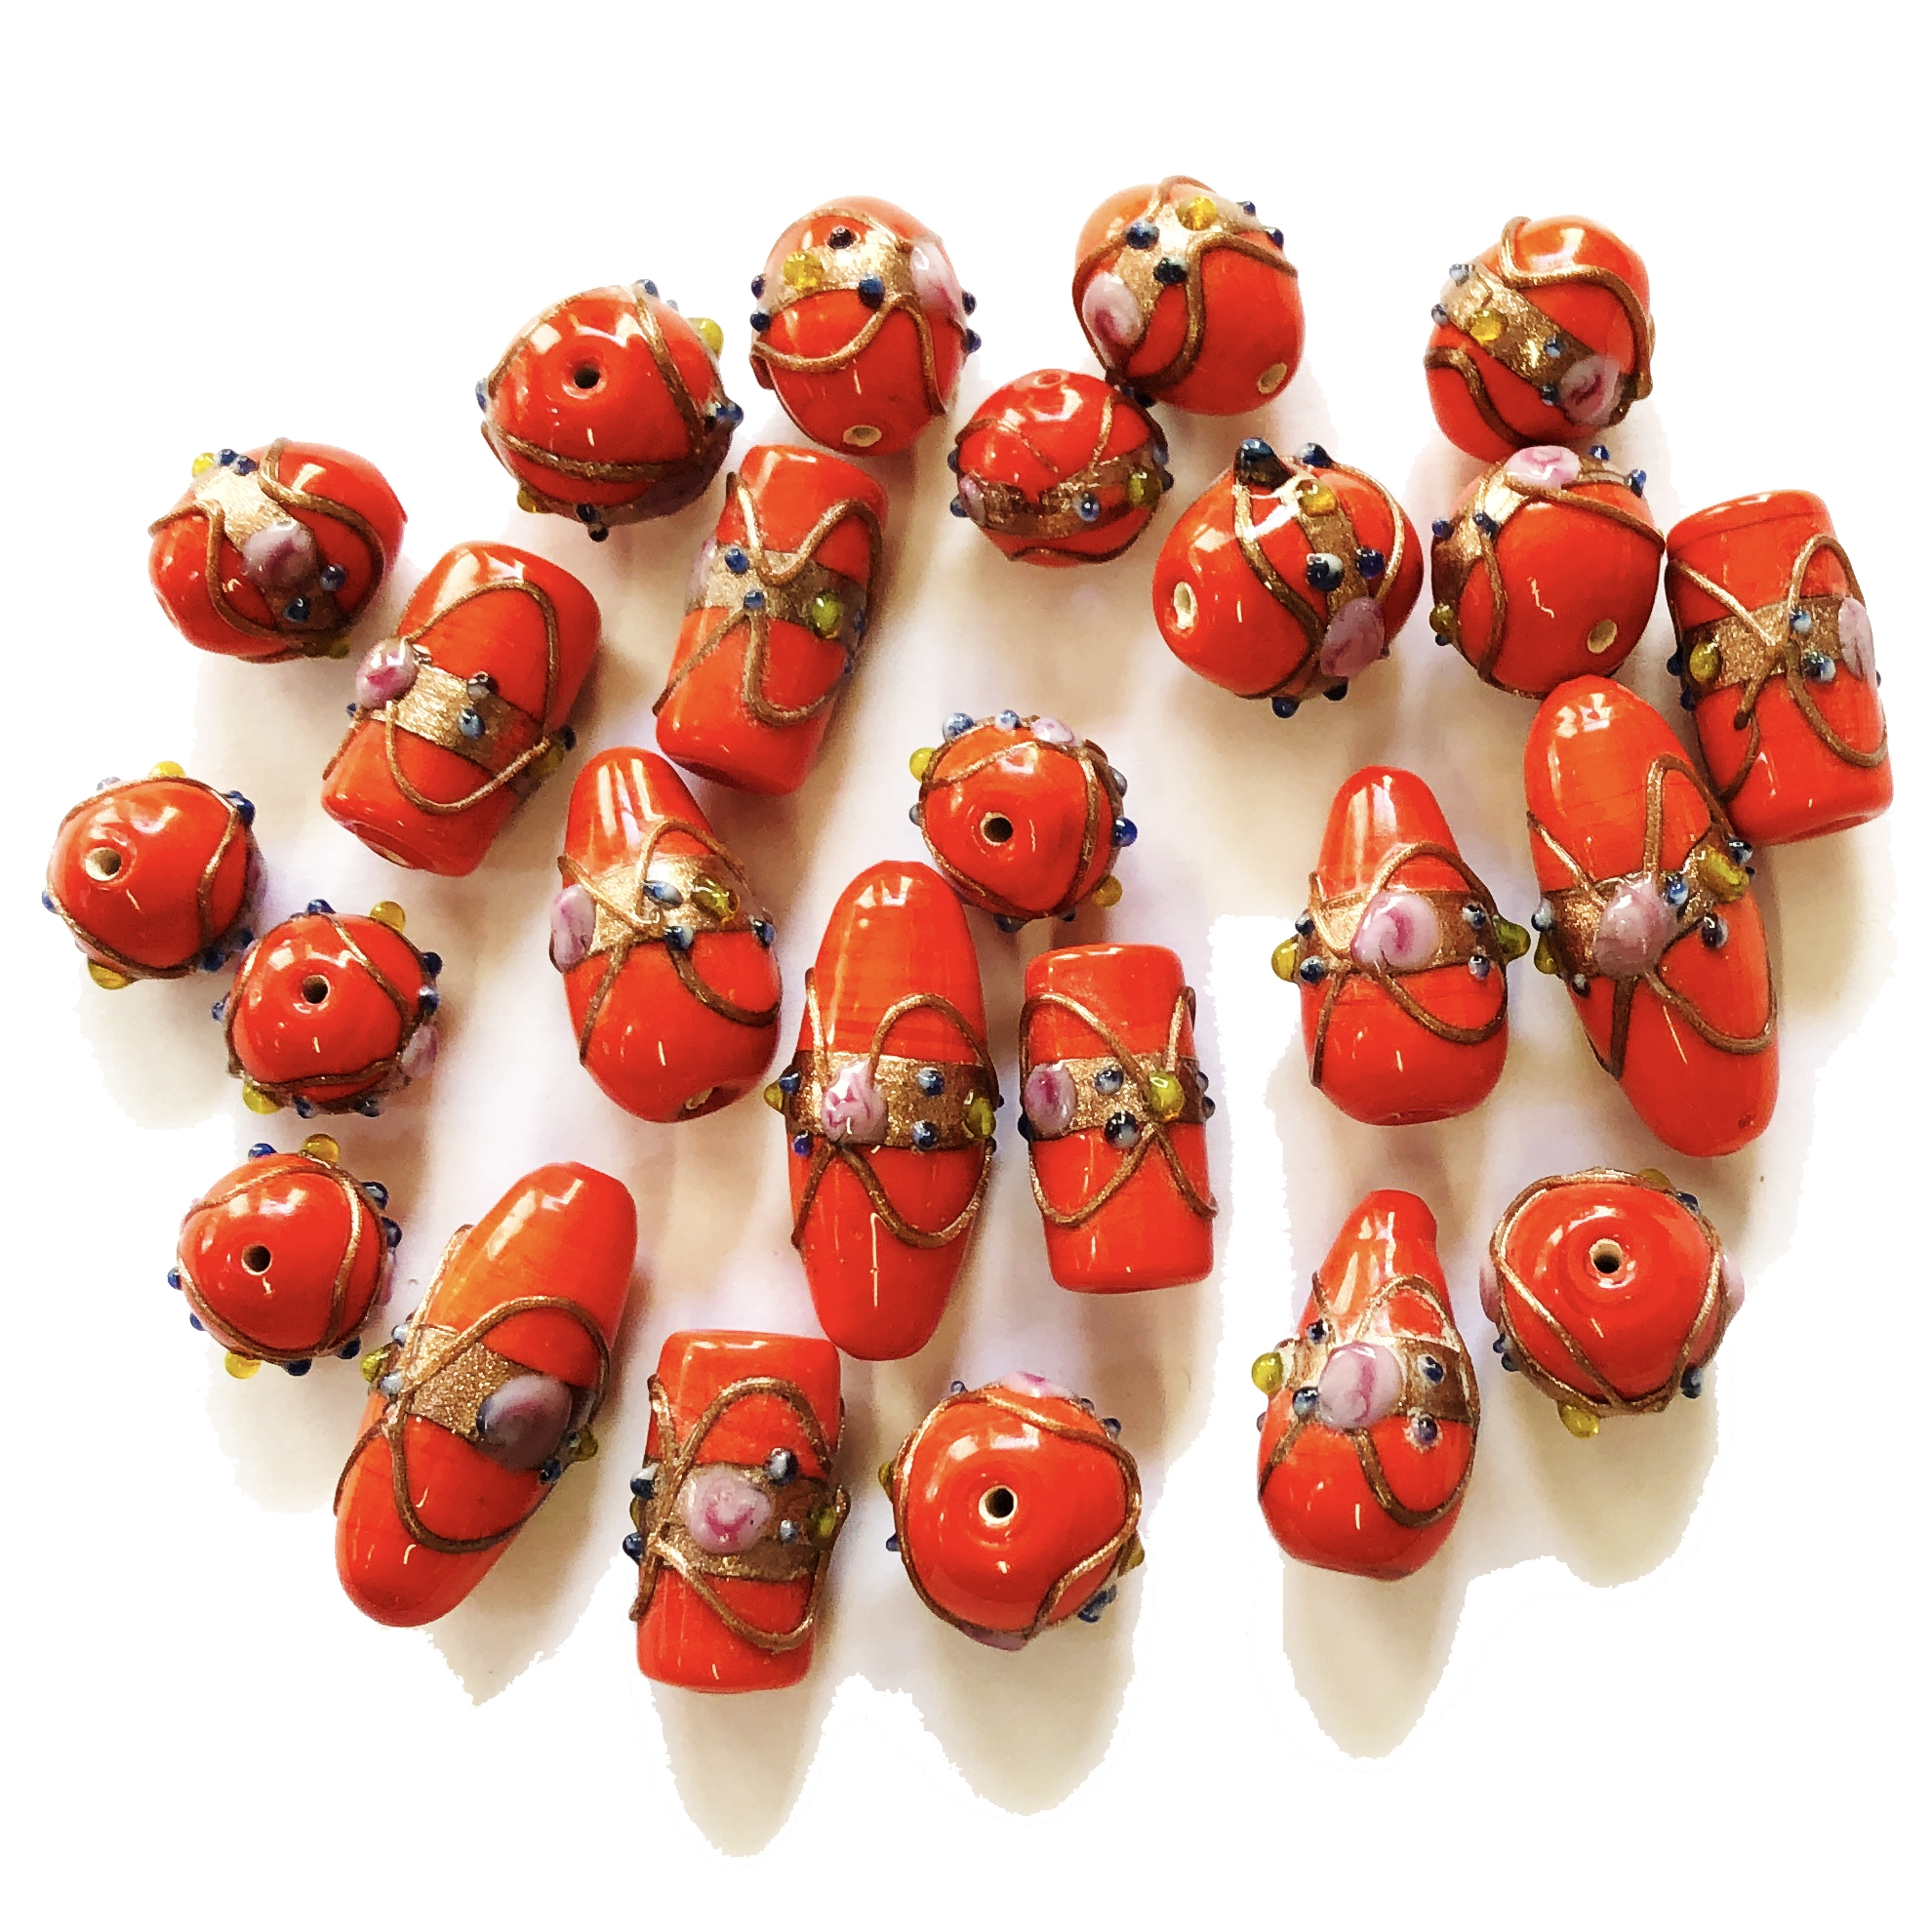 lampwork beads, India glass beads, 10-20mm, beads made by hand, lamp glass, wedding cake beads, glass beads, red bead, white with gold trim beads, beading supplies, jewelry making supplies, B'sue Boutiques, 0208